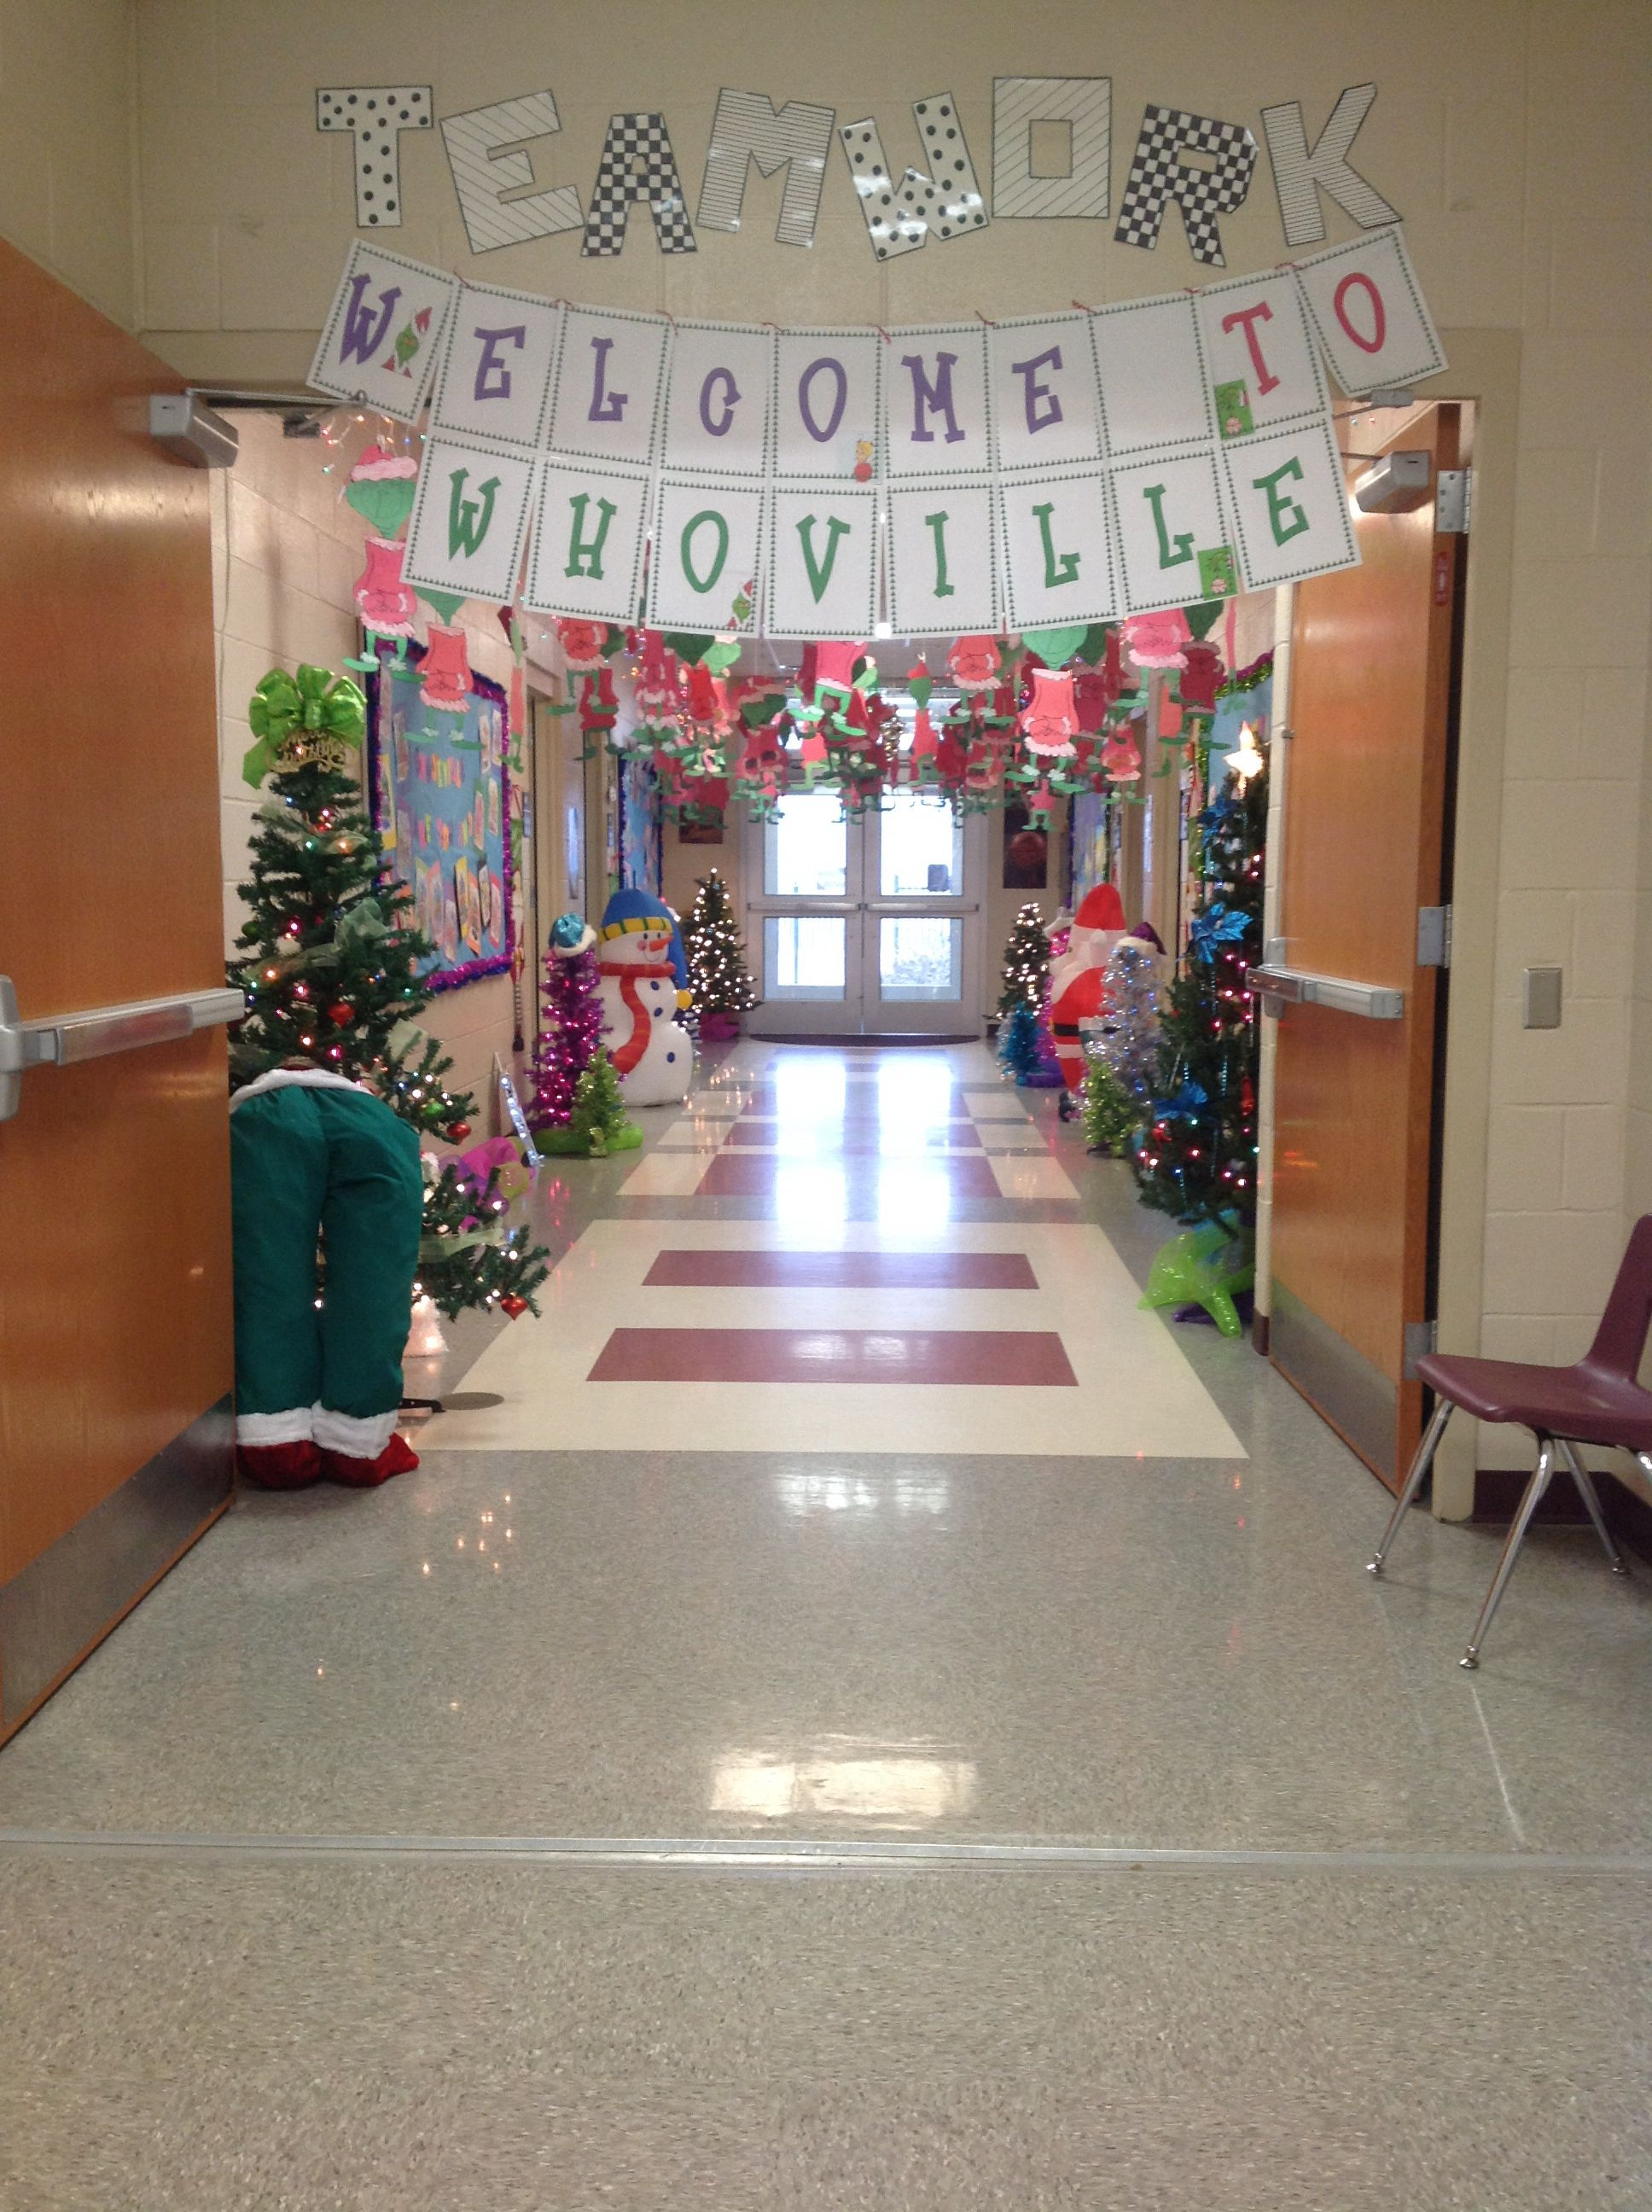 Welcome To Whoville Classroom Ideas Whoville